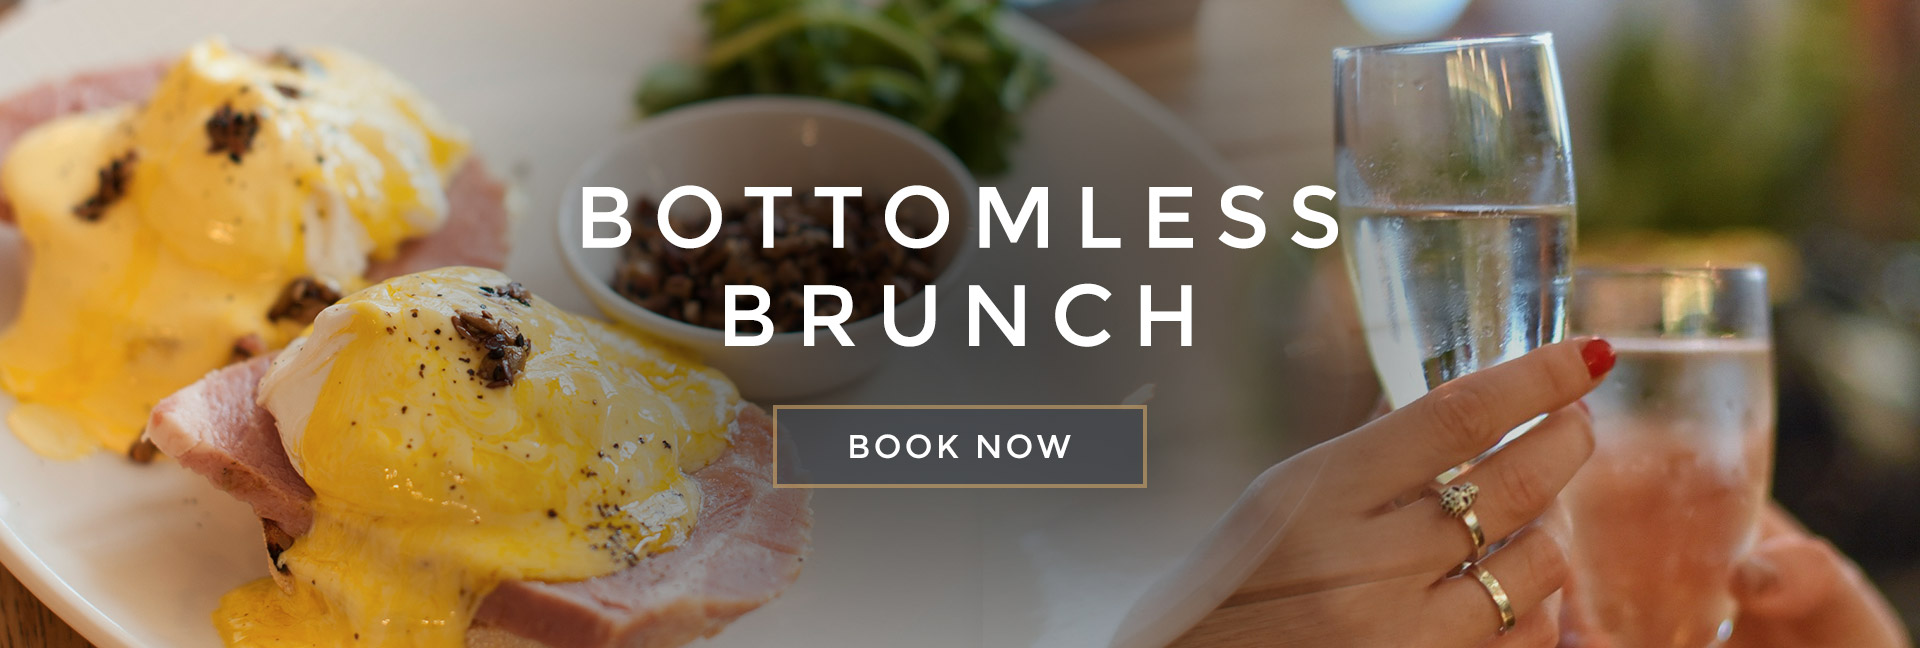 Bottomless Brunch at All Bar One New Oxford Street - Book now